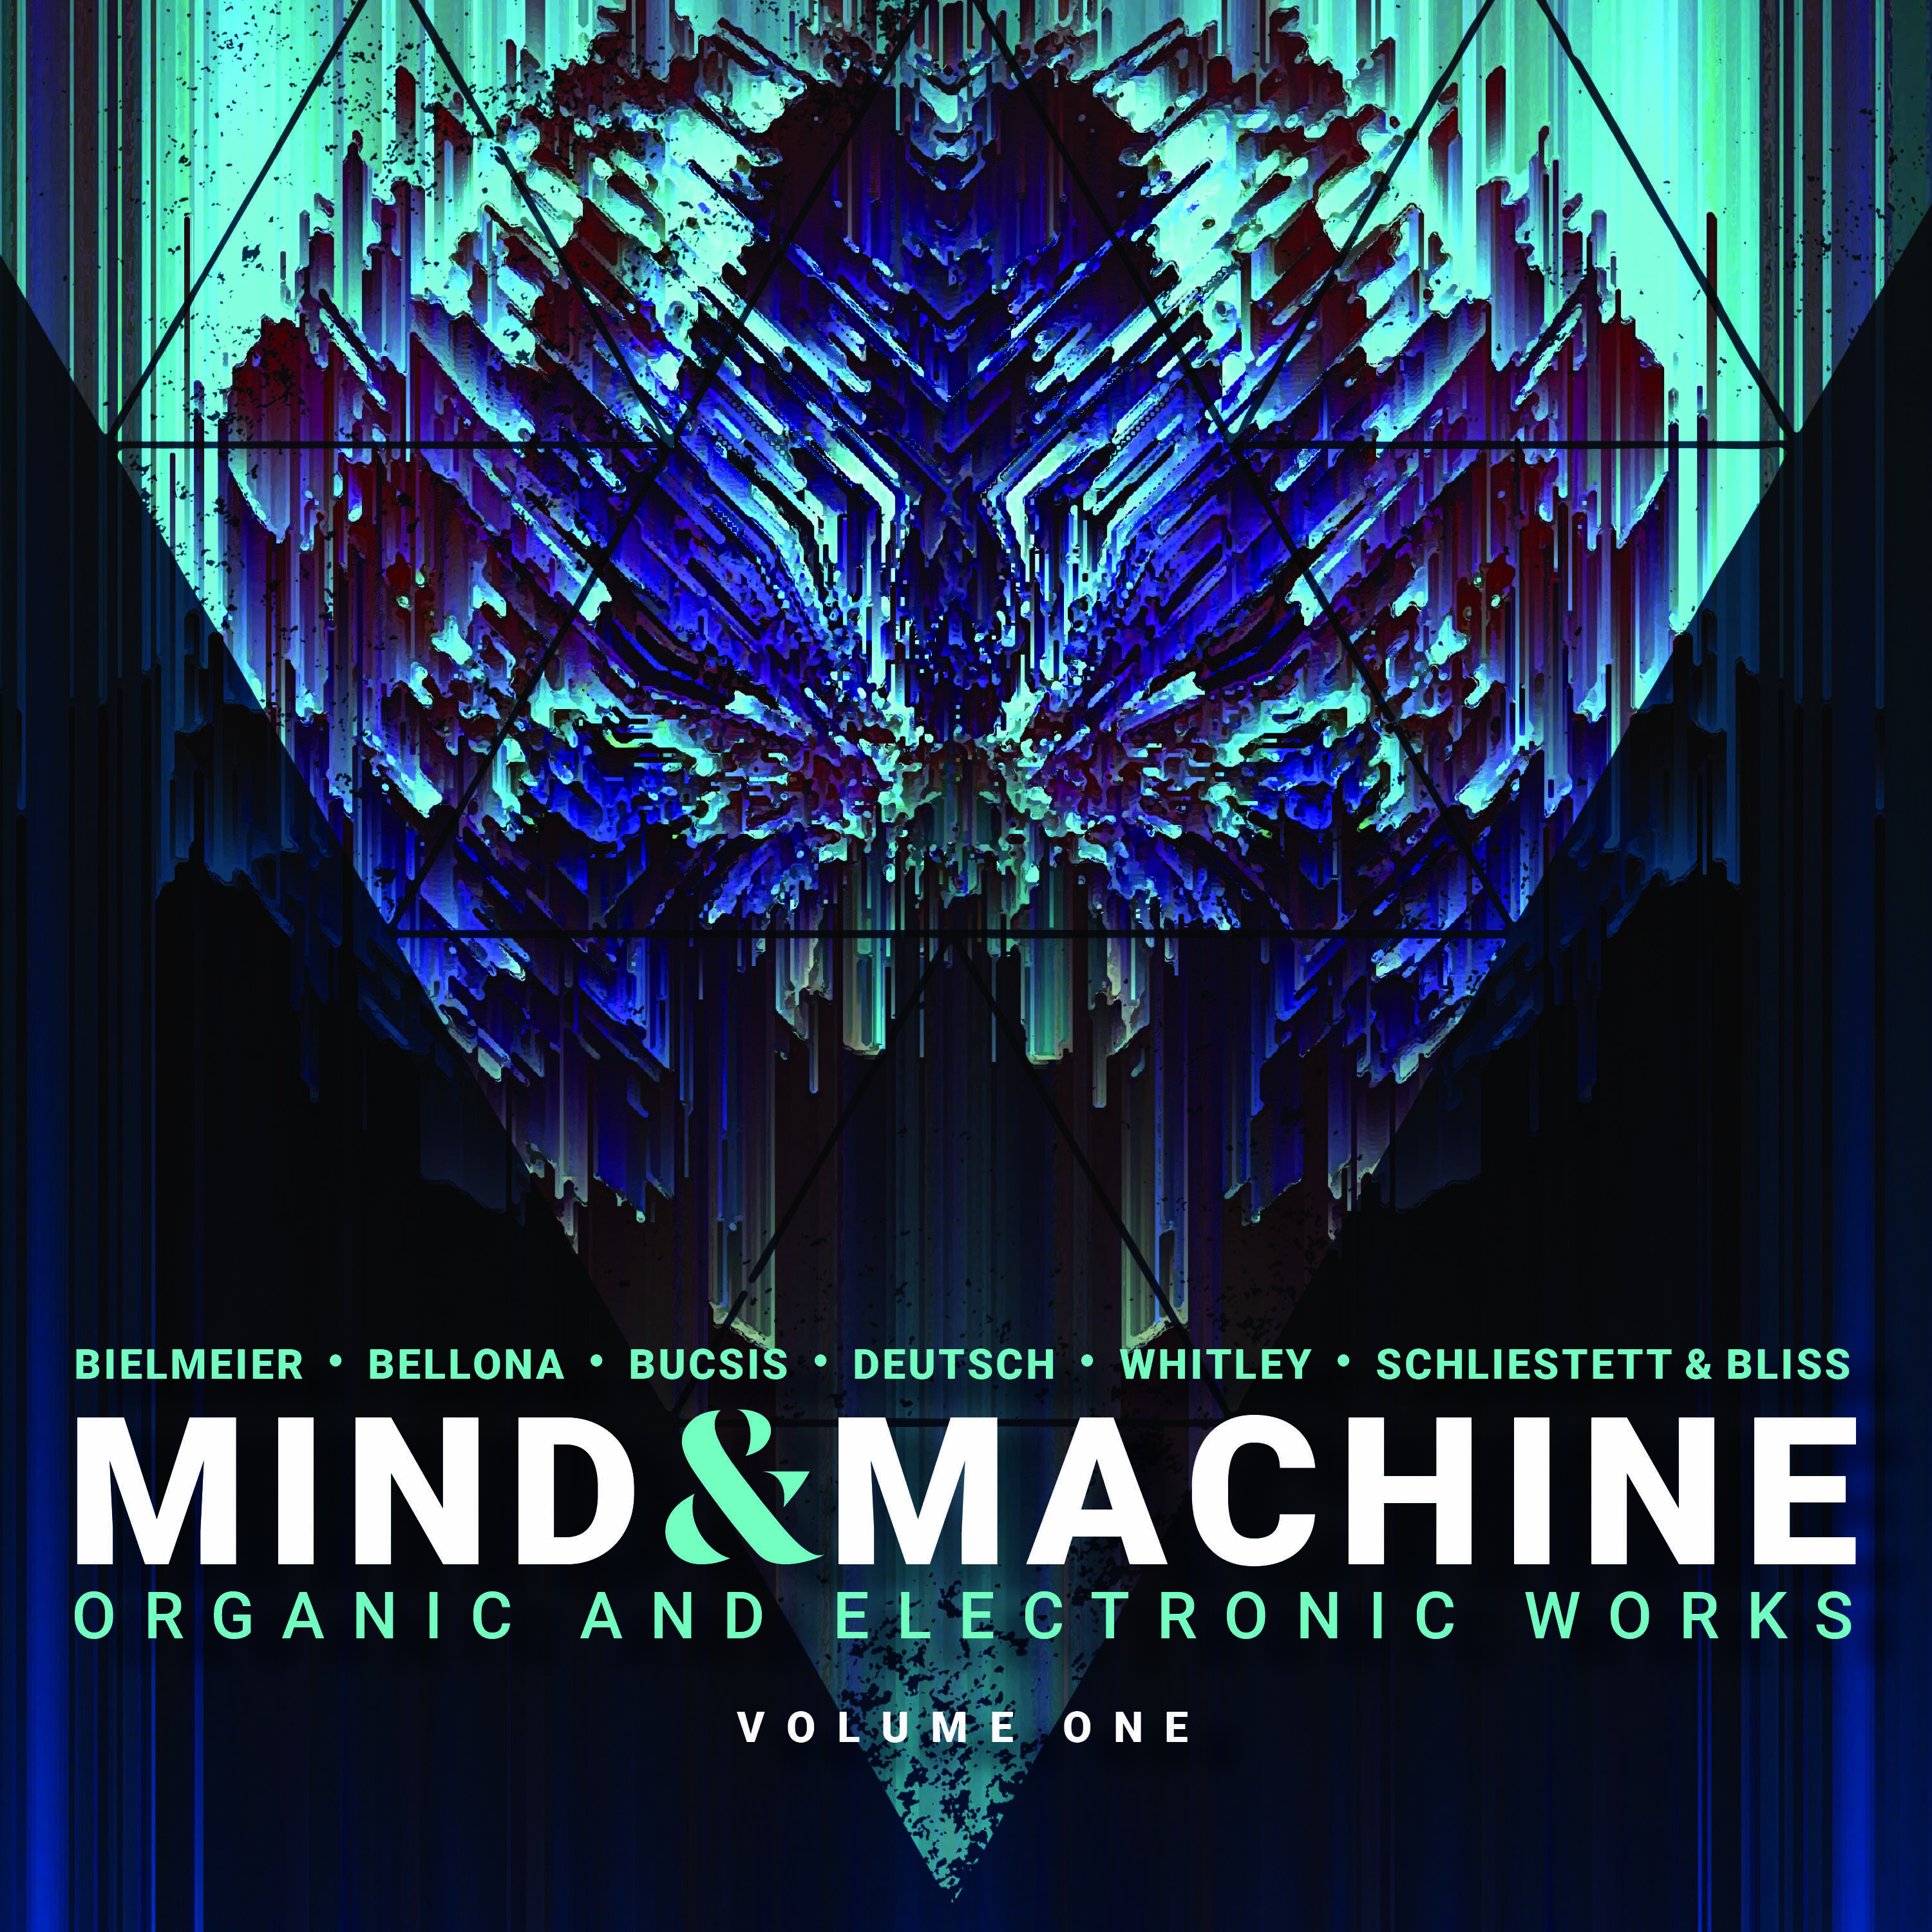 rr7994---mind-and-machine---vol-1---front-cover